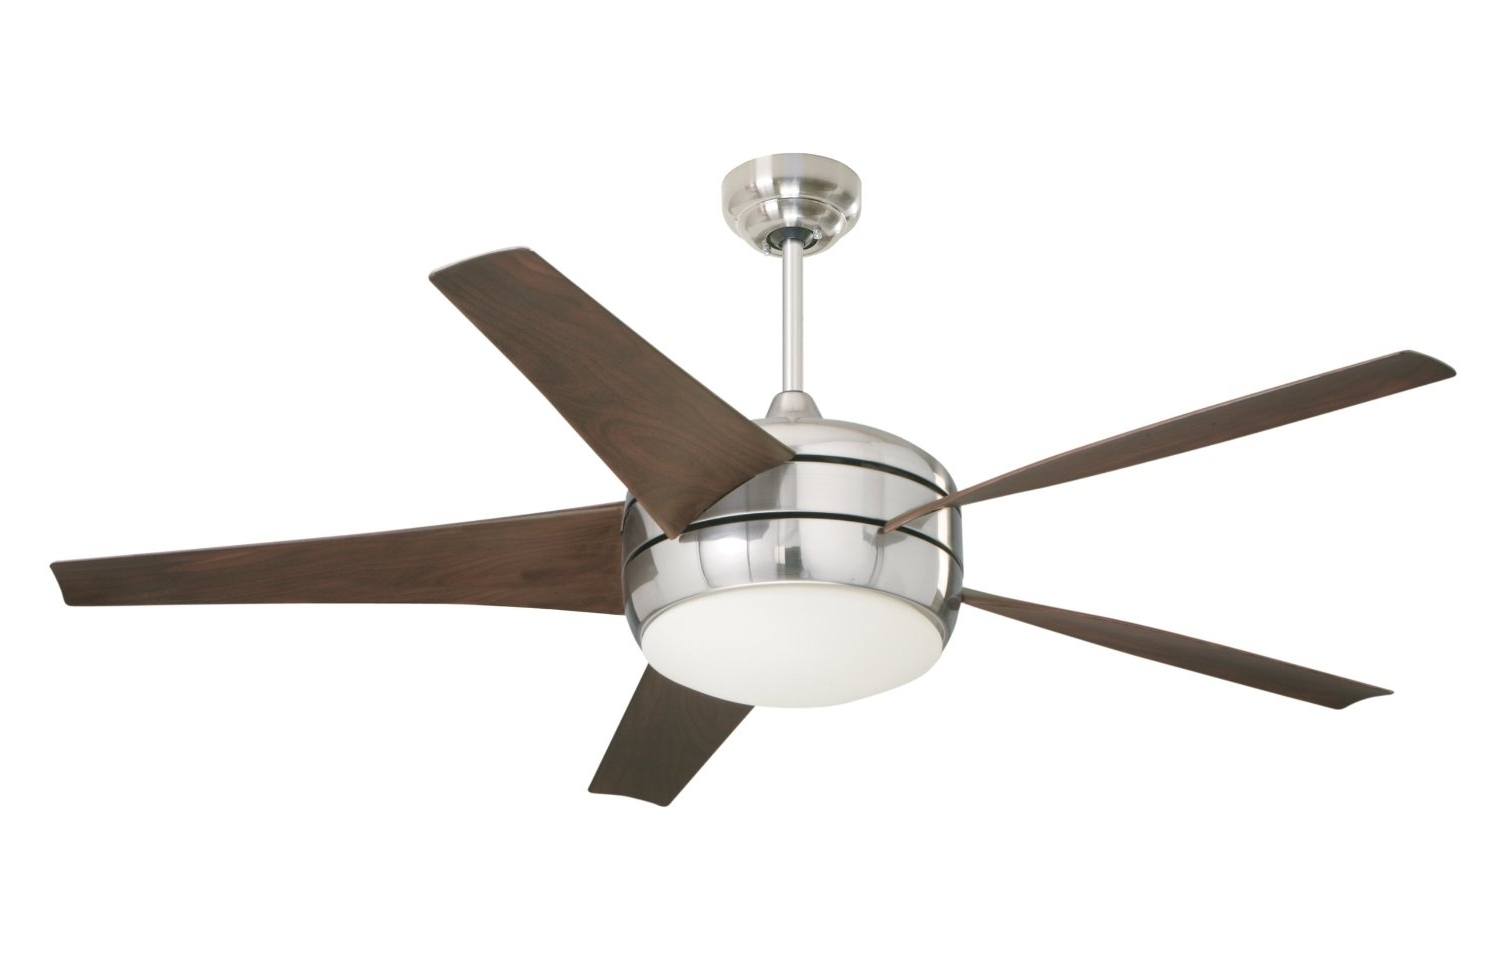 Best Ceiling Fans Reviews, Buying Guide And Comparison 2018 Pertaining To Recent Outdoor Ceiling Fans With High Cfm (View 18 of 20)